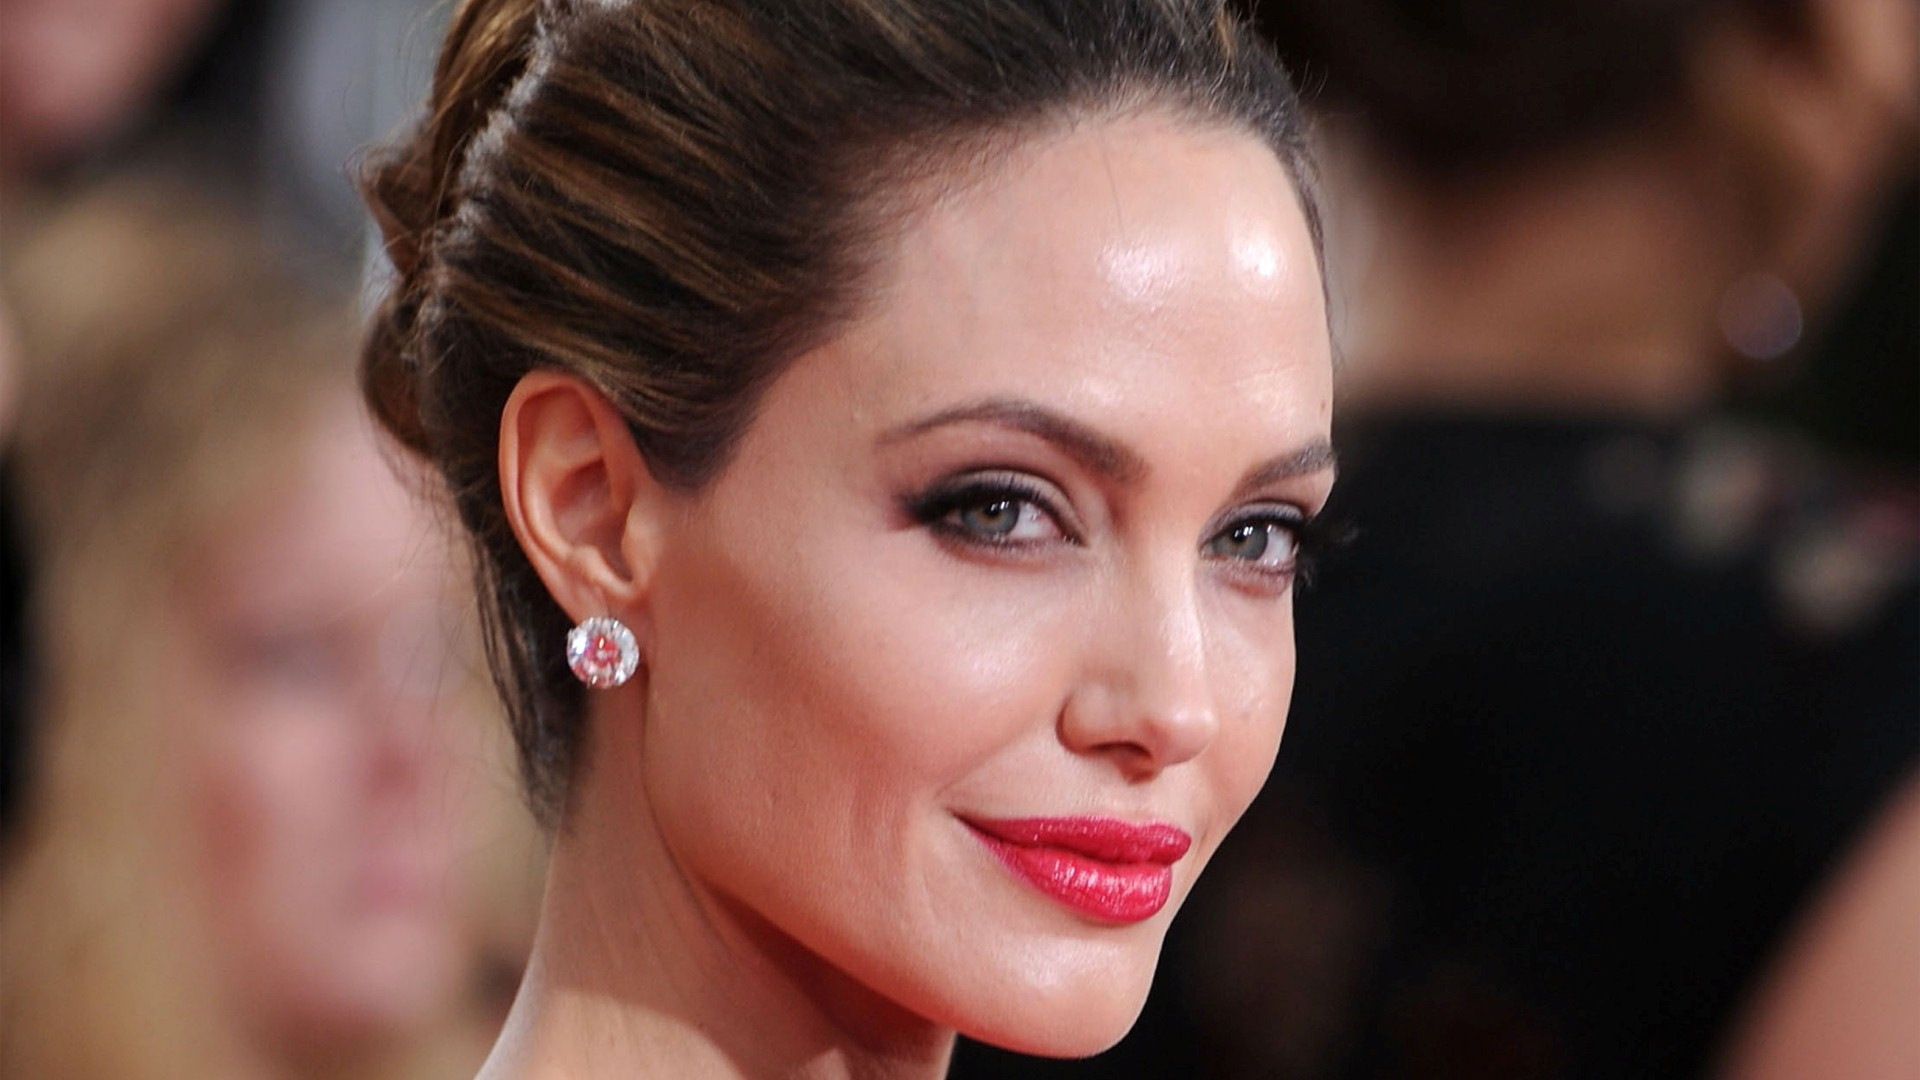 Cute Face Girl Wallpapers For Mobile Angelina Jolie Hd Download Hd Wallpaper Download Free